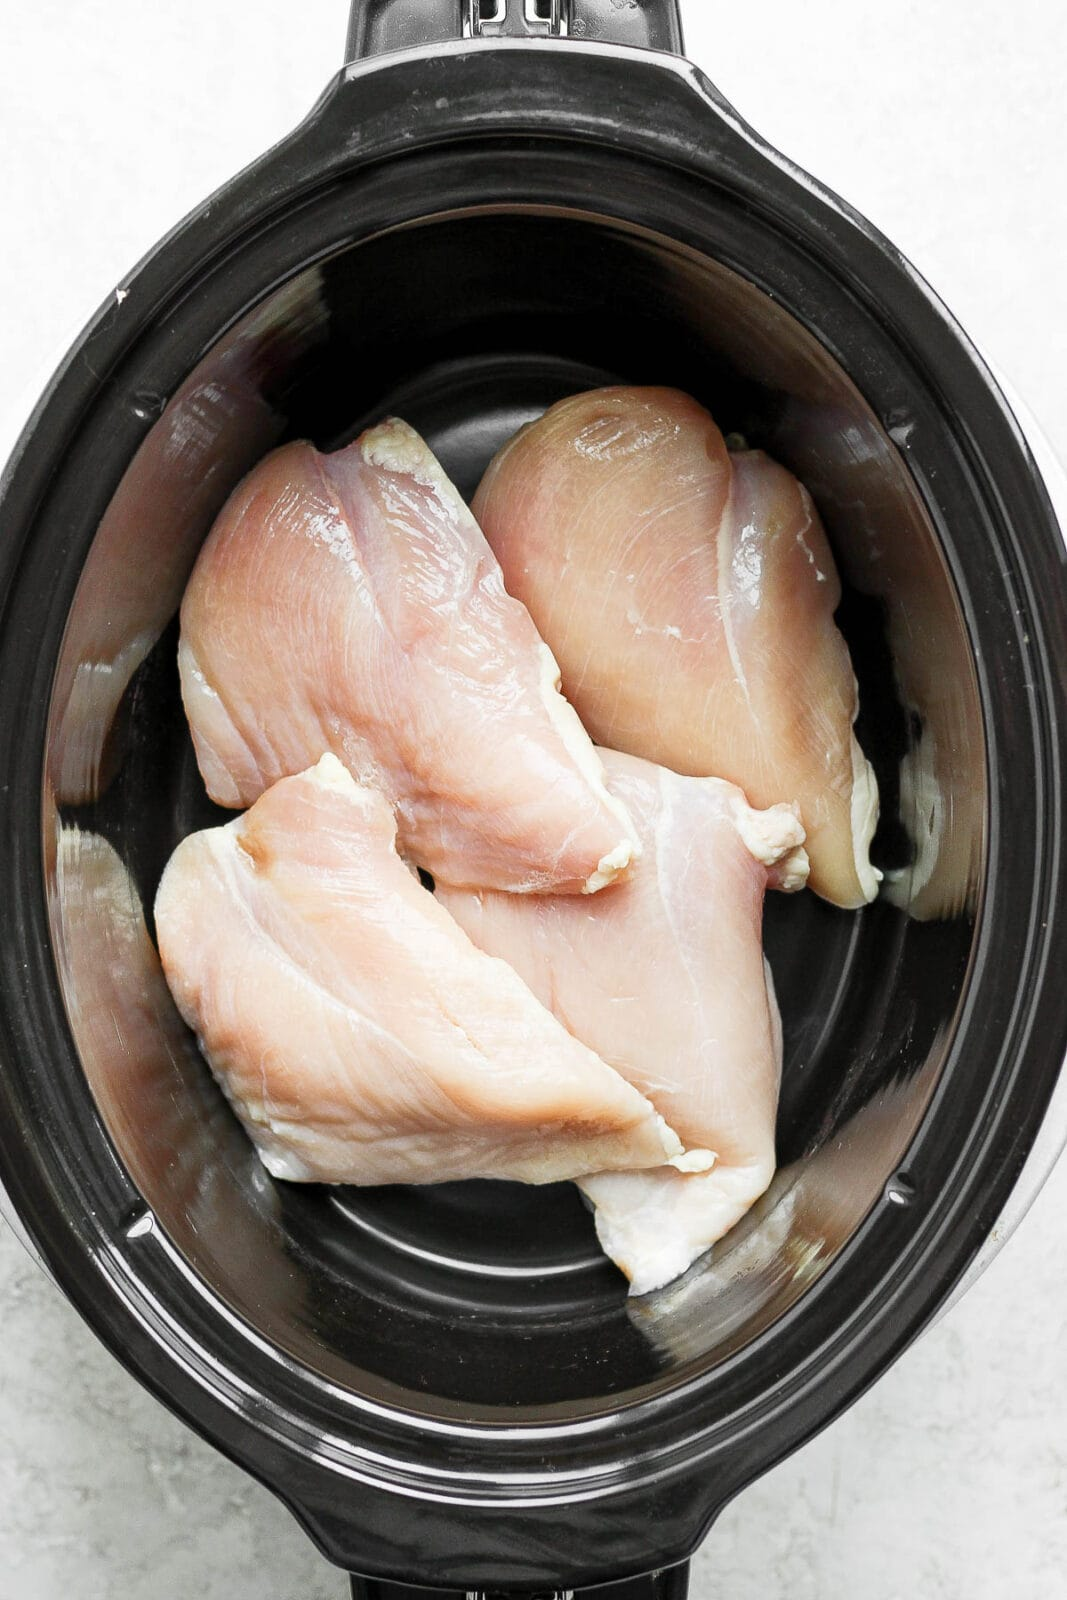 4 raw chicken breasts in a slow cooker.